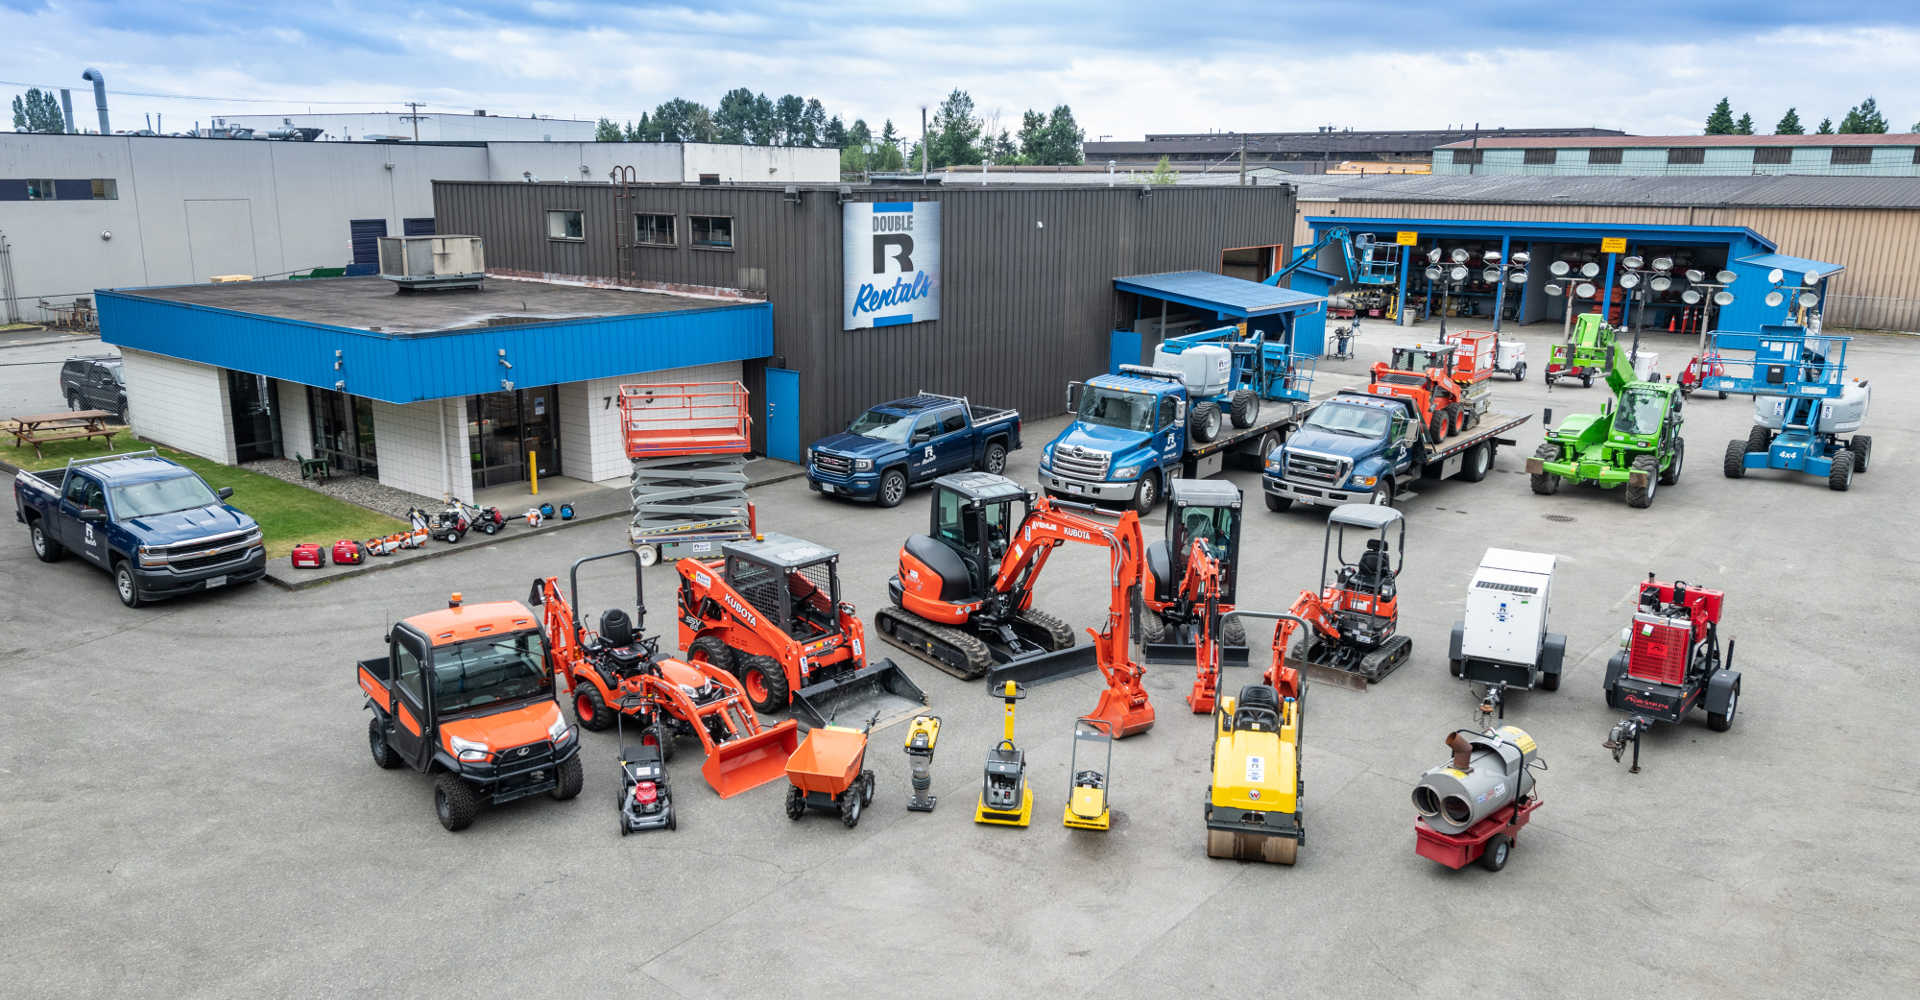 Construction Equipment & Tool Rentals in Vancouver